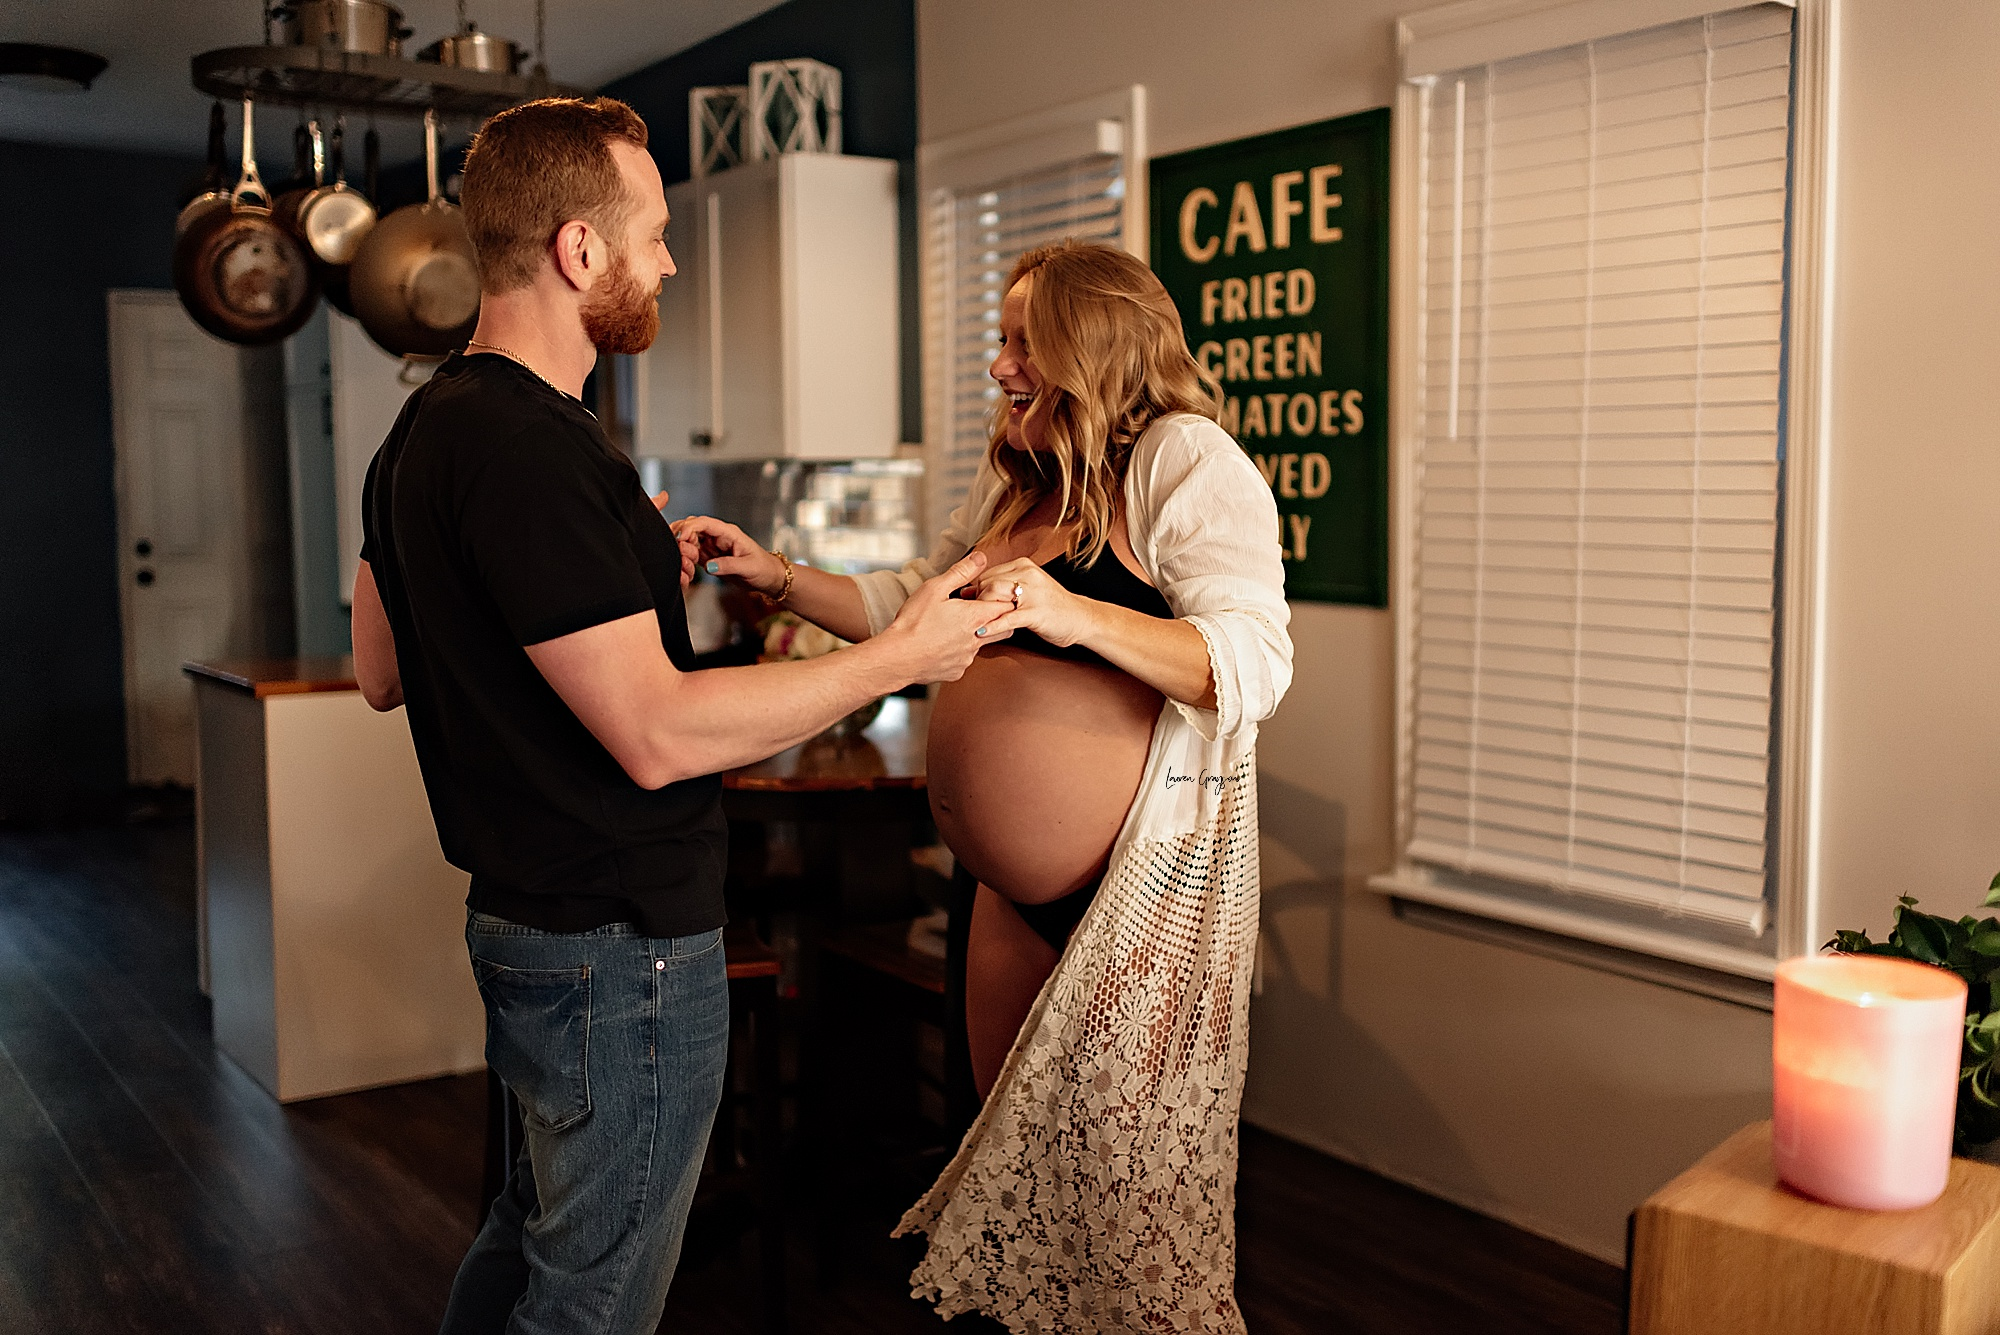 cleveland photographer, intimate maternity session at home, lauren grayson photography